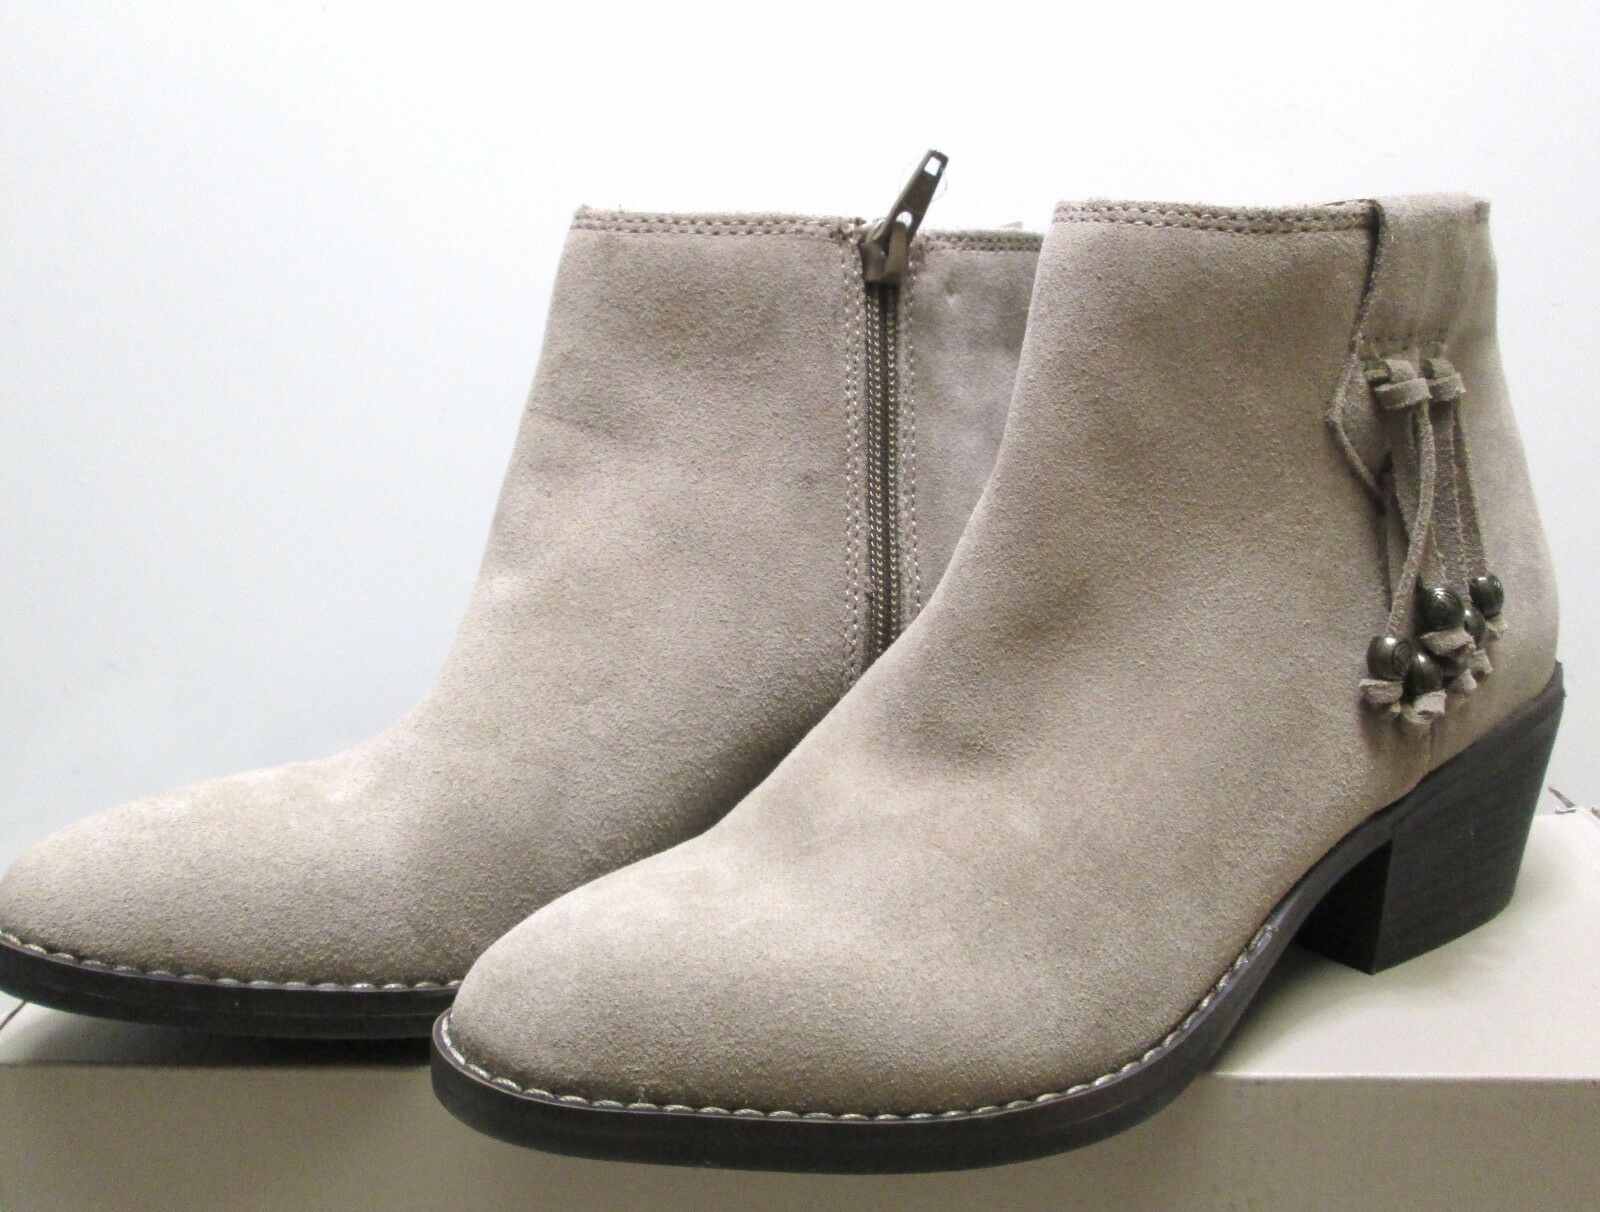 White Mountain Havana Tassel Suede Booties stone Taupe choose size 6.5 NEW